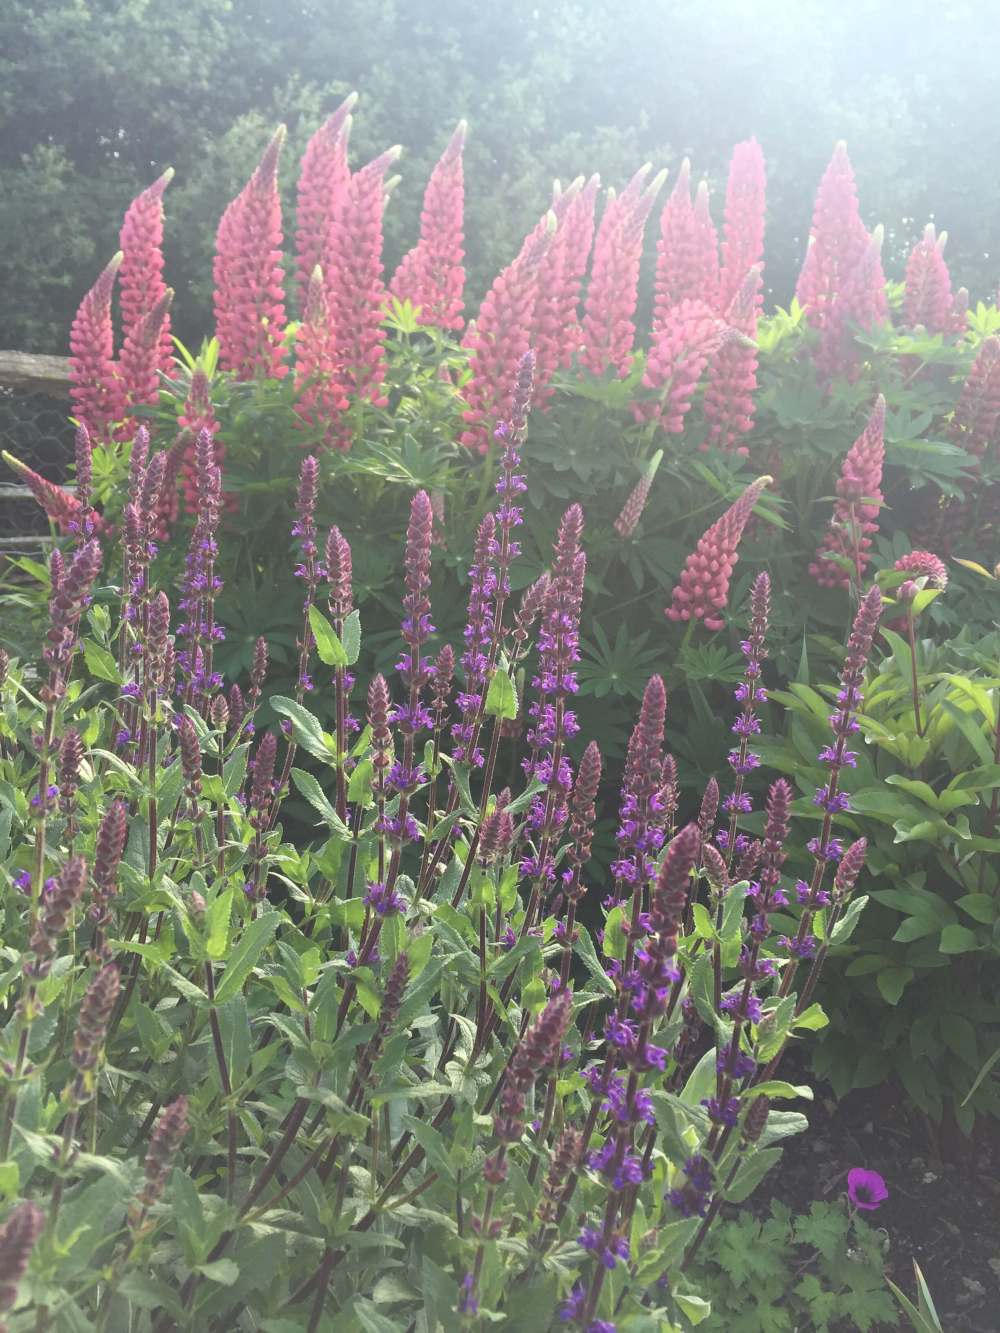 Salvia nemorosa 'Caradonna' and Lupin 'Gallery Red'